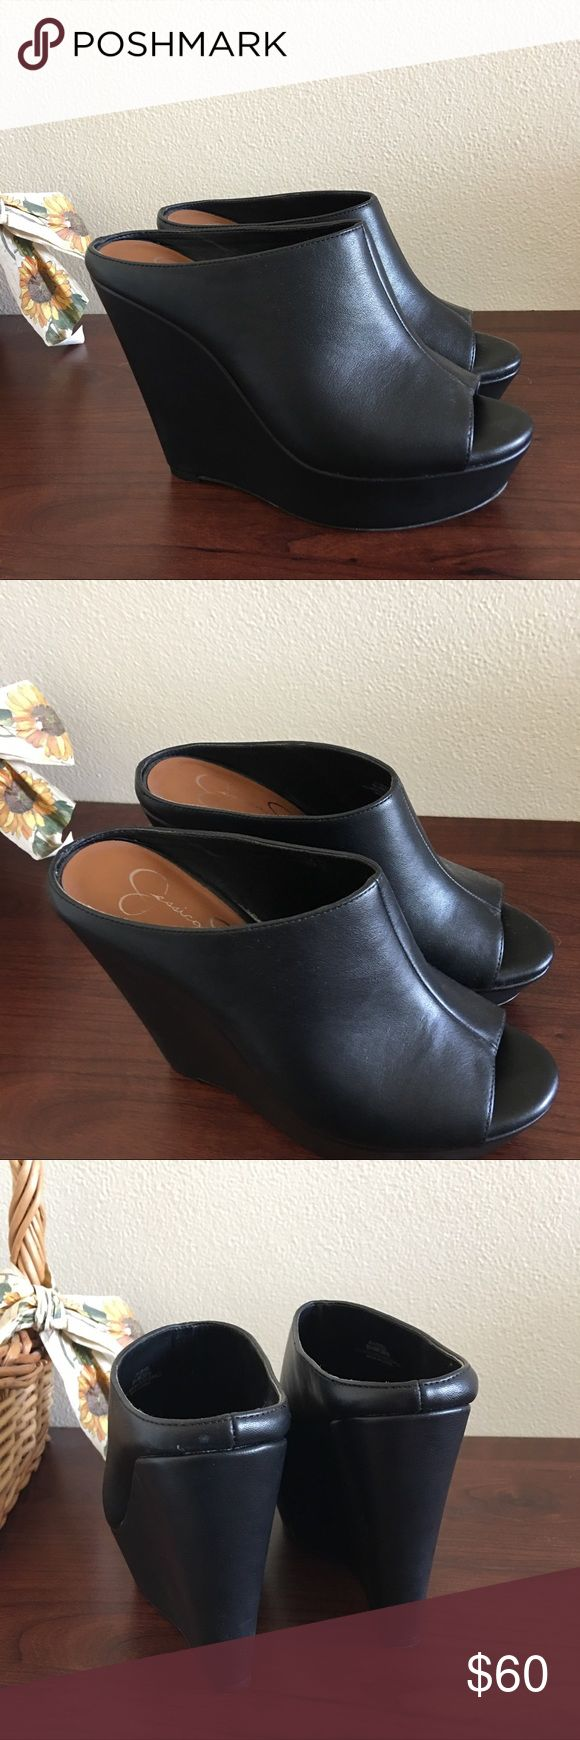 Jessica Simpson Wedge Slide These are SO comfortable but I just never wear them. Size 6.5. Like new. Send an offer or bundle to save! Authentic. Jessica Simpson Shoes Wedges